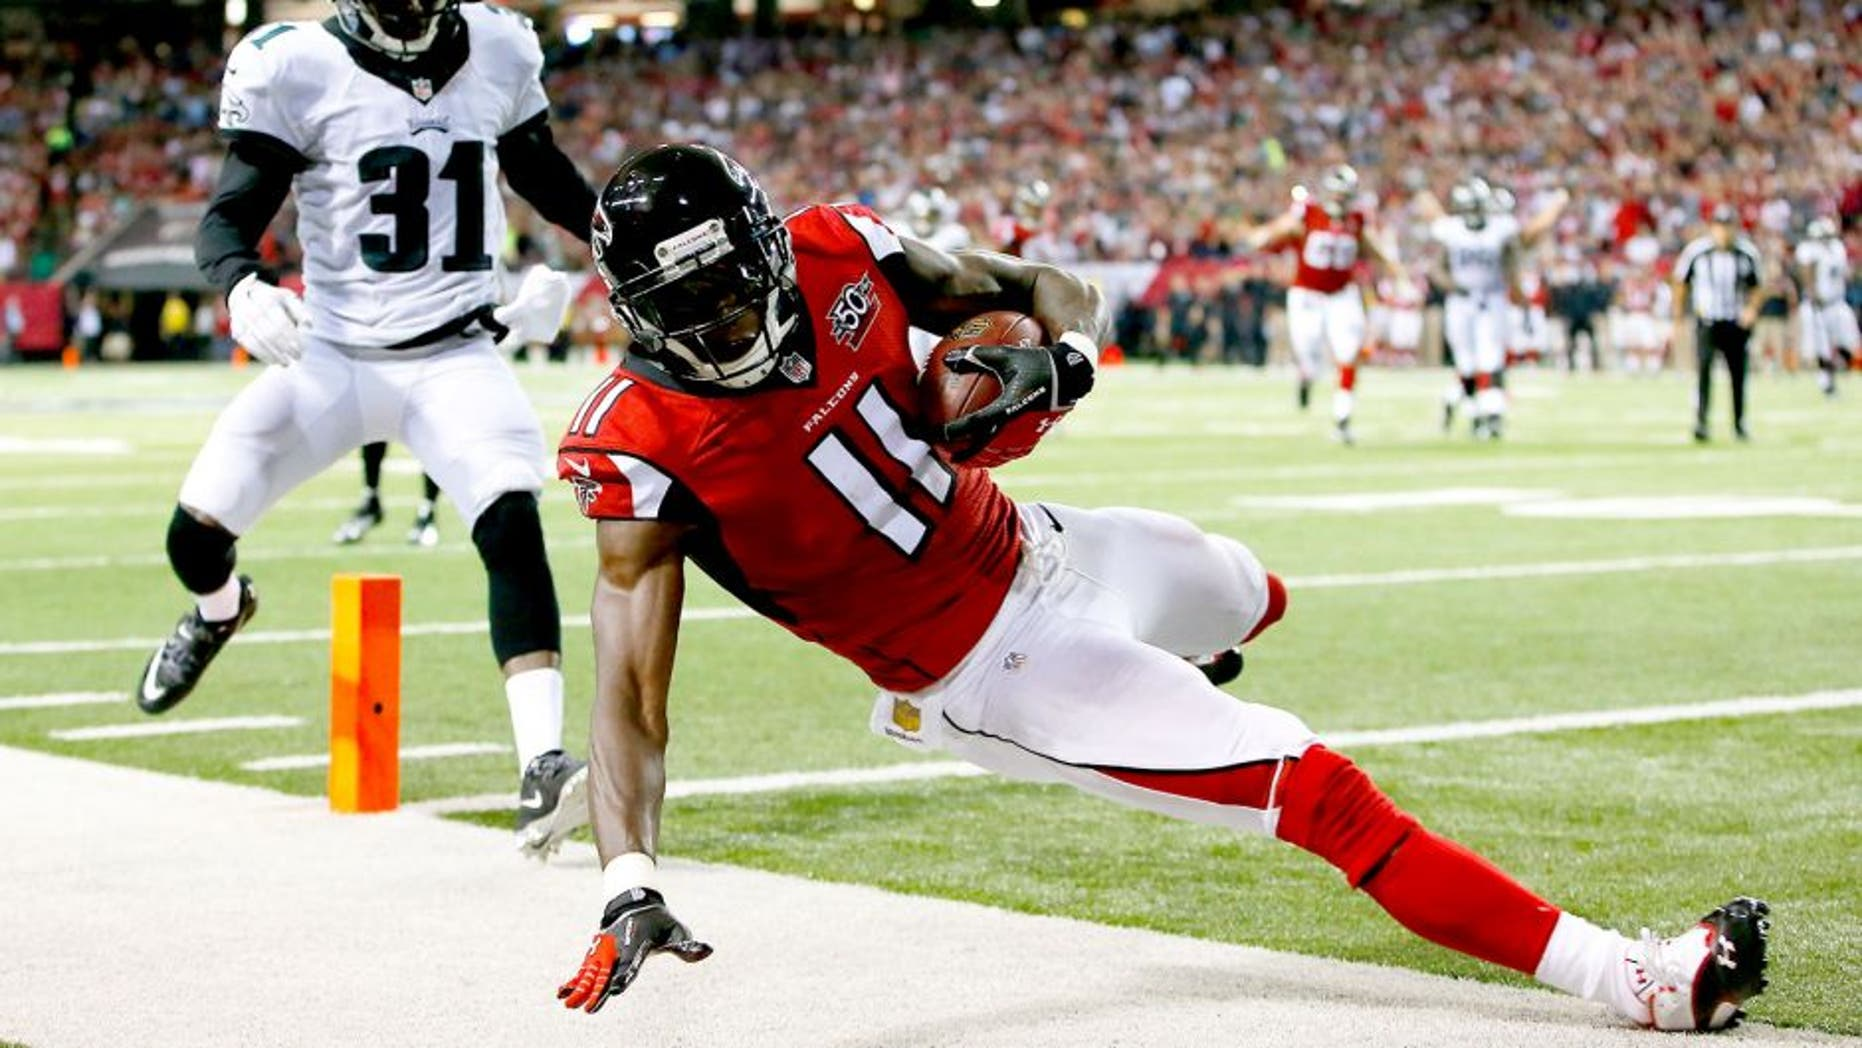 ATLANTA, GA - SEPTEMBER 14: Julio Jones #11 of the Atlanta Falcons scores a touchdown against Byron Maxwell #31 of the Philadelphia Eagles during the first half at the Georgia Dome on September 14, 2015 in Atlanta, Georgia. (Photo by Kevin C. Cox/Getty Images)